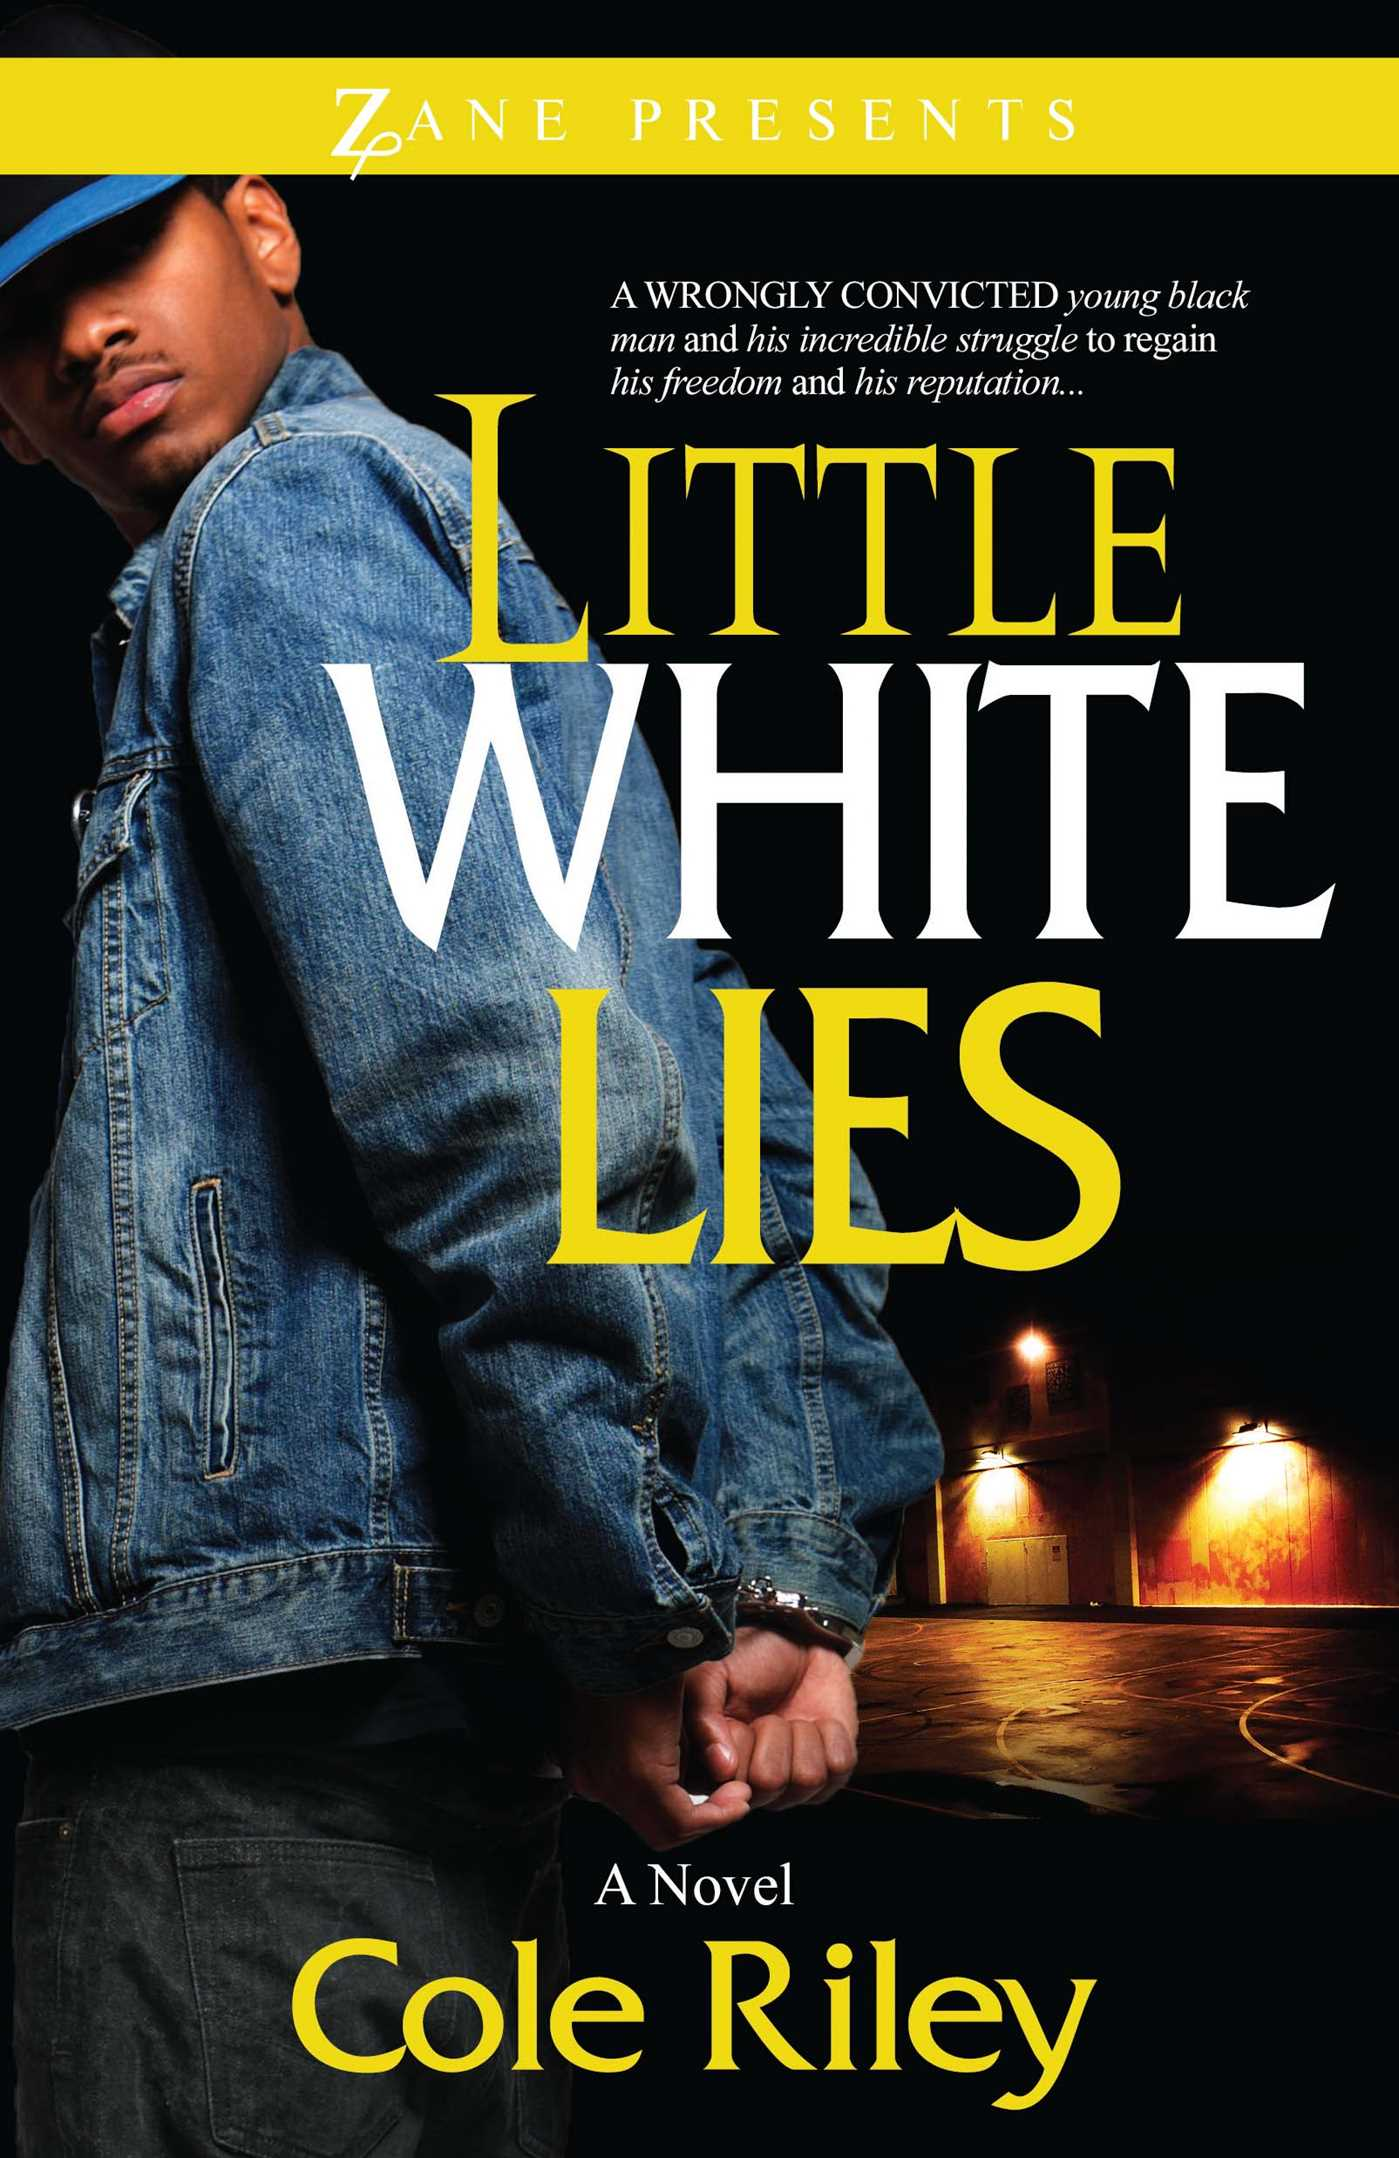 Little white lies 9781593095185 hr